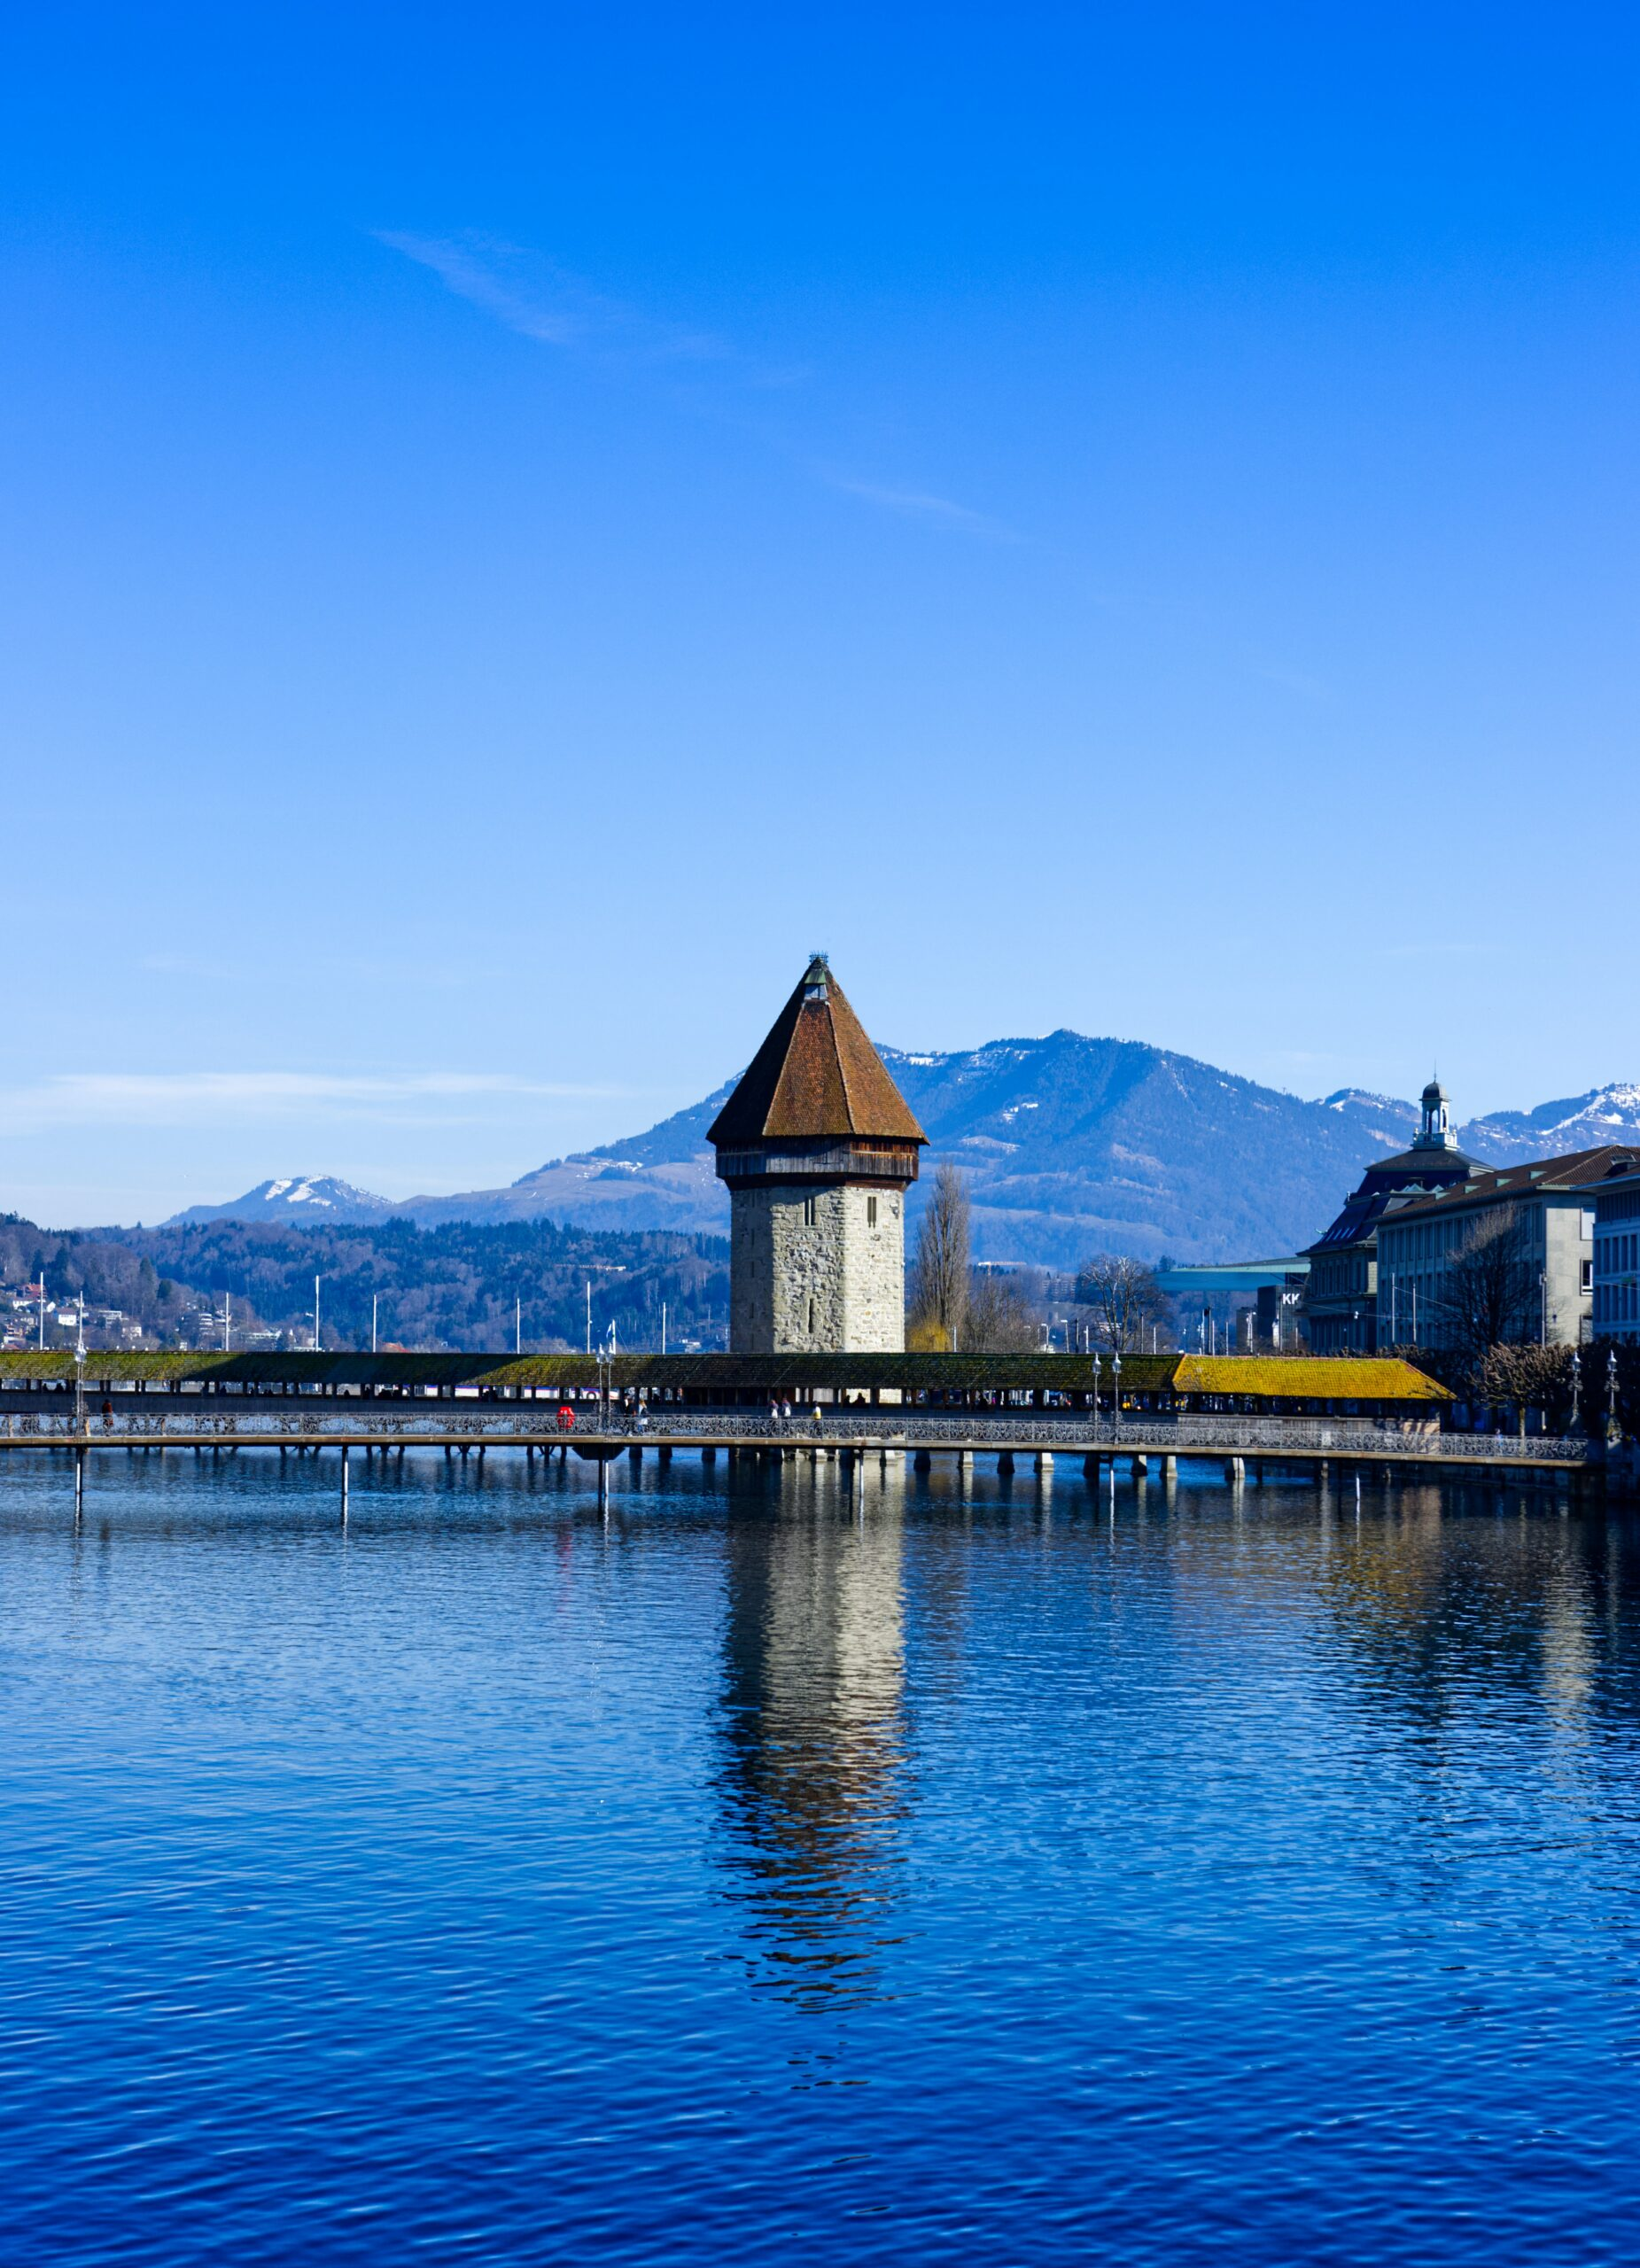 This picture shows the Lucerne landscape overseeing the famous bridge.